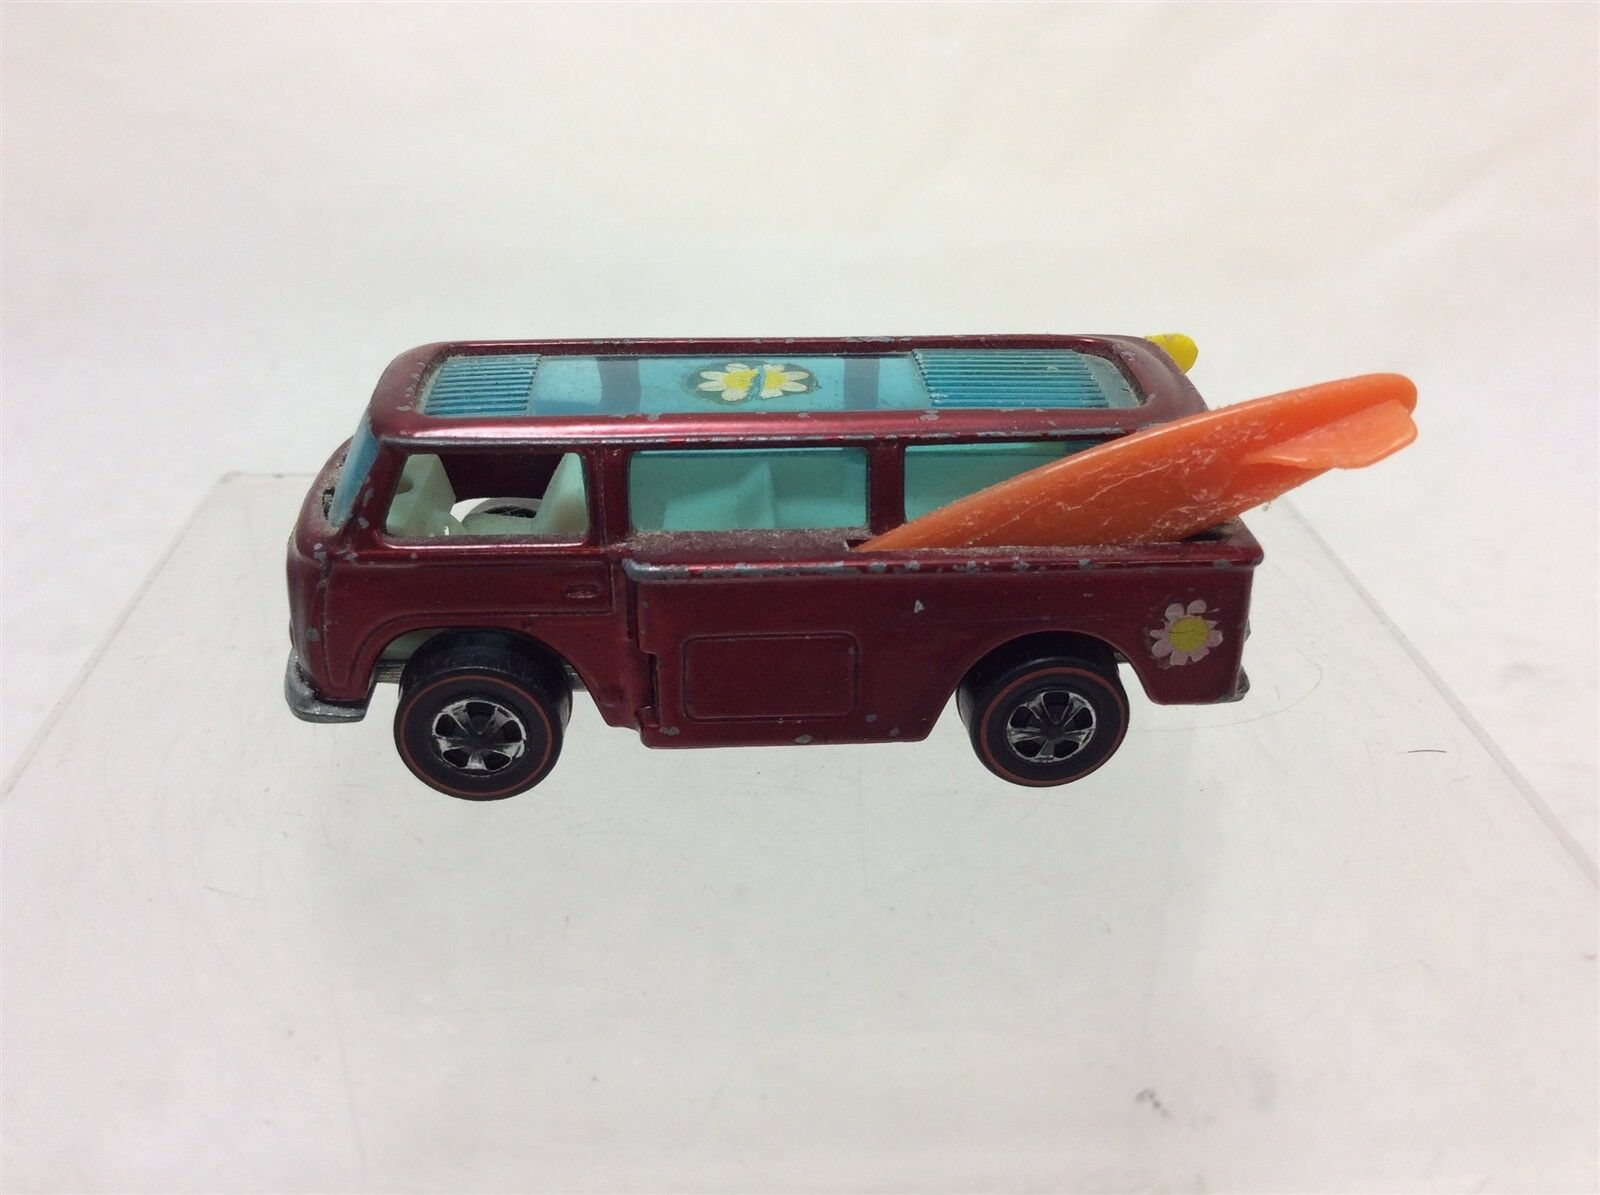 Hot wheels 1969 vw beach bomb - vintage - original - surfbretter